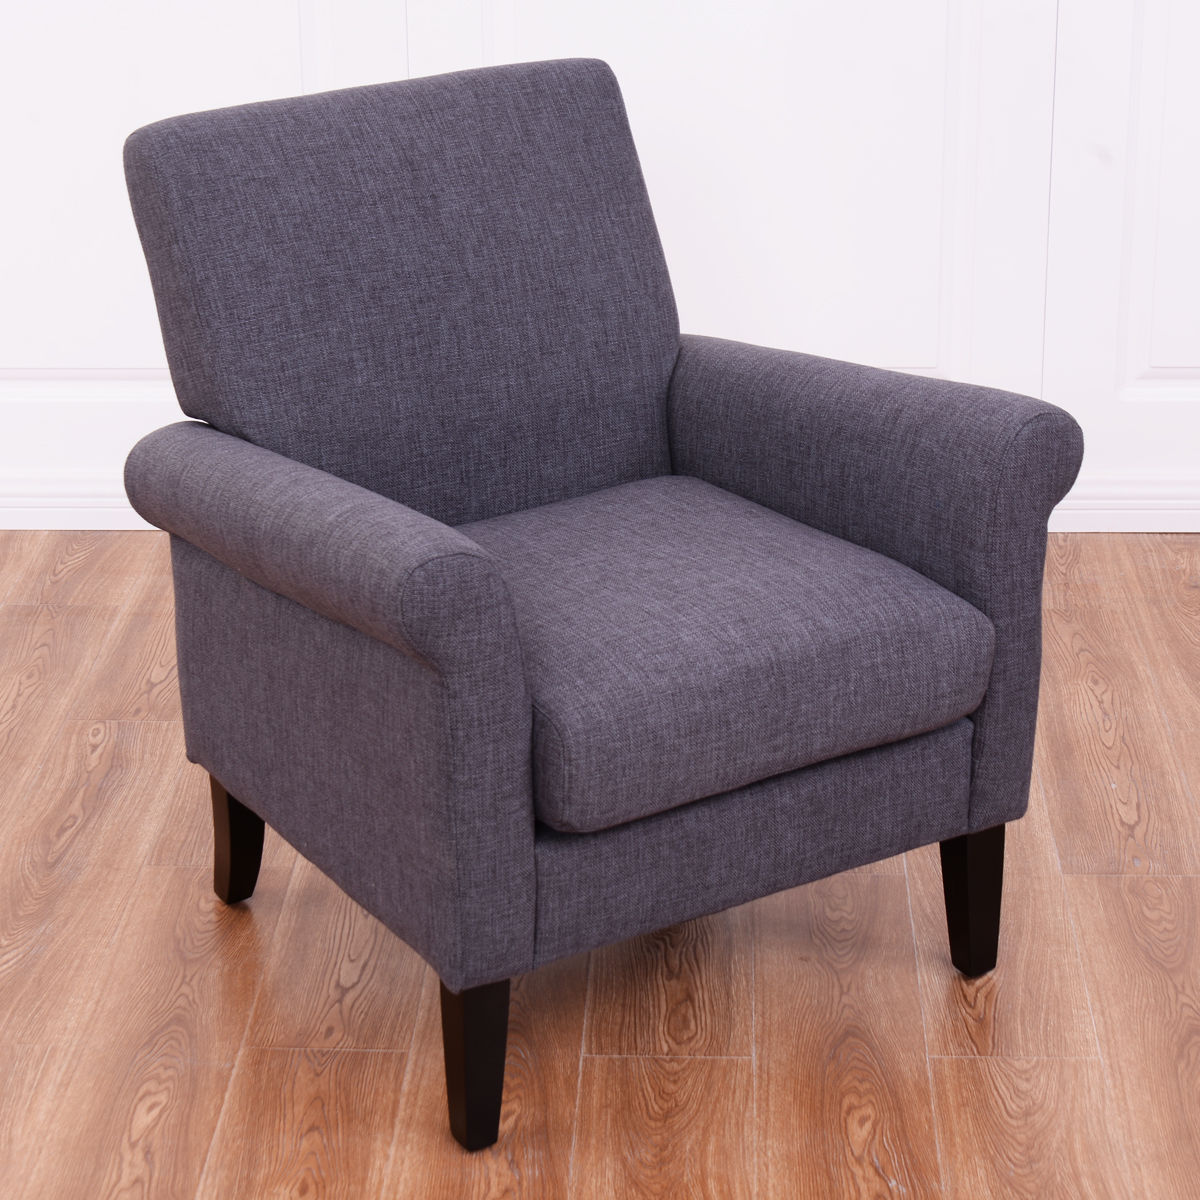 Costway Modern Accent Arm Upholstered Chair Leisure Sofa Seat Fabric Wood  Legs Furniture